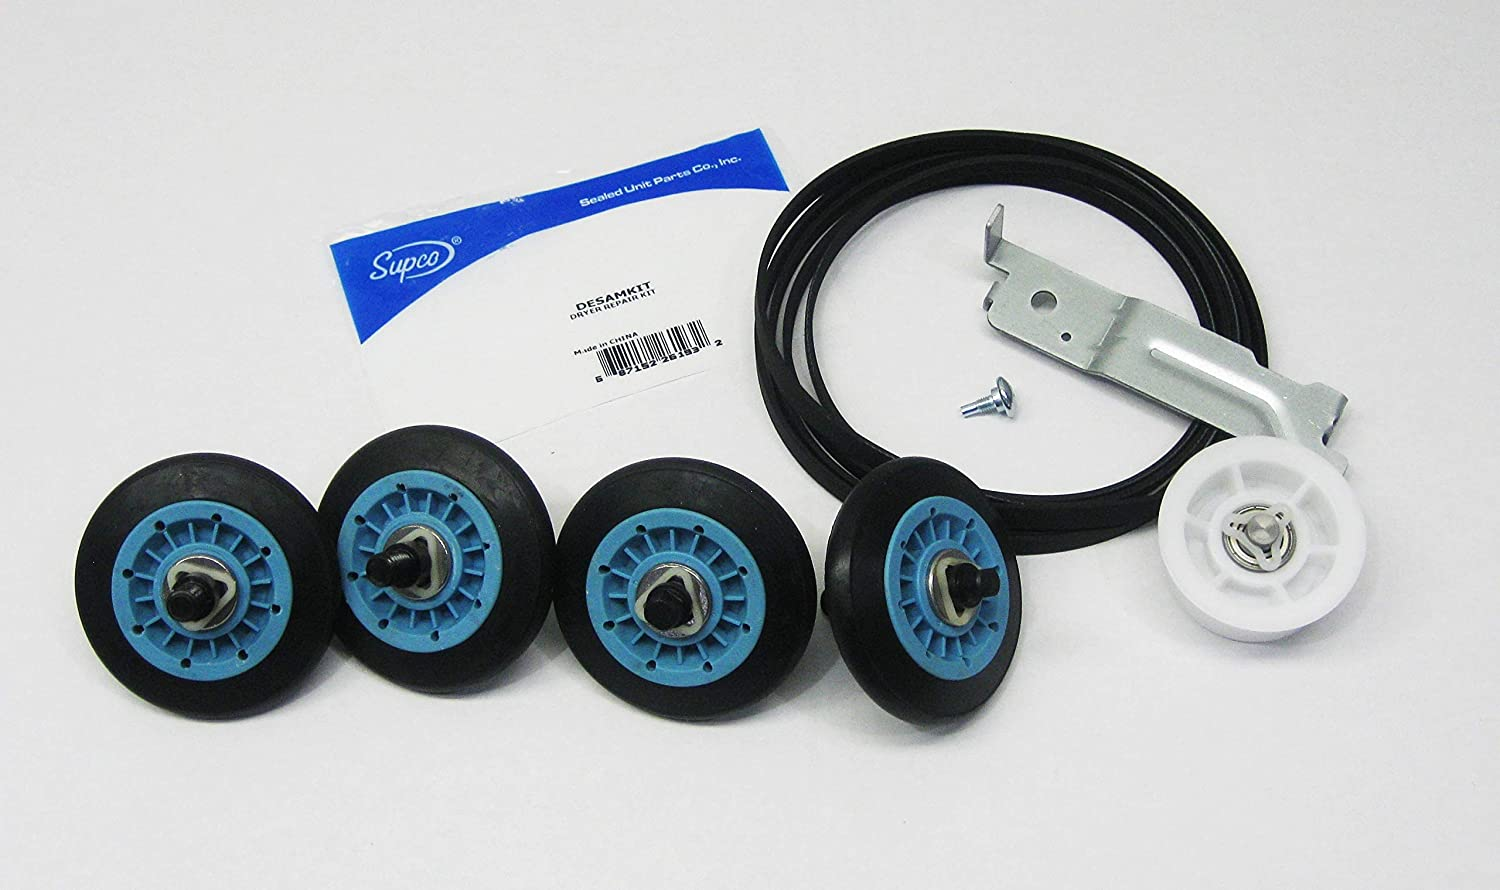 Supco DESAMKIT Dryer Repair Kit For Samsung   Includes (4) DC97-16782A Dryer Support Rollers, (1) DC93-00634A Idler Arm and (1) 6602-001655 Belt